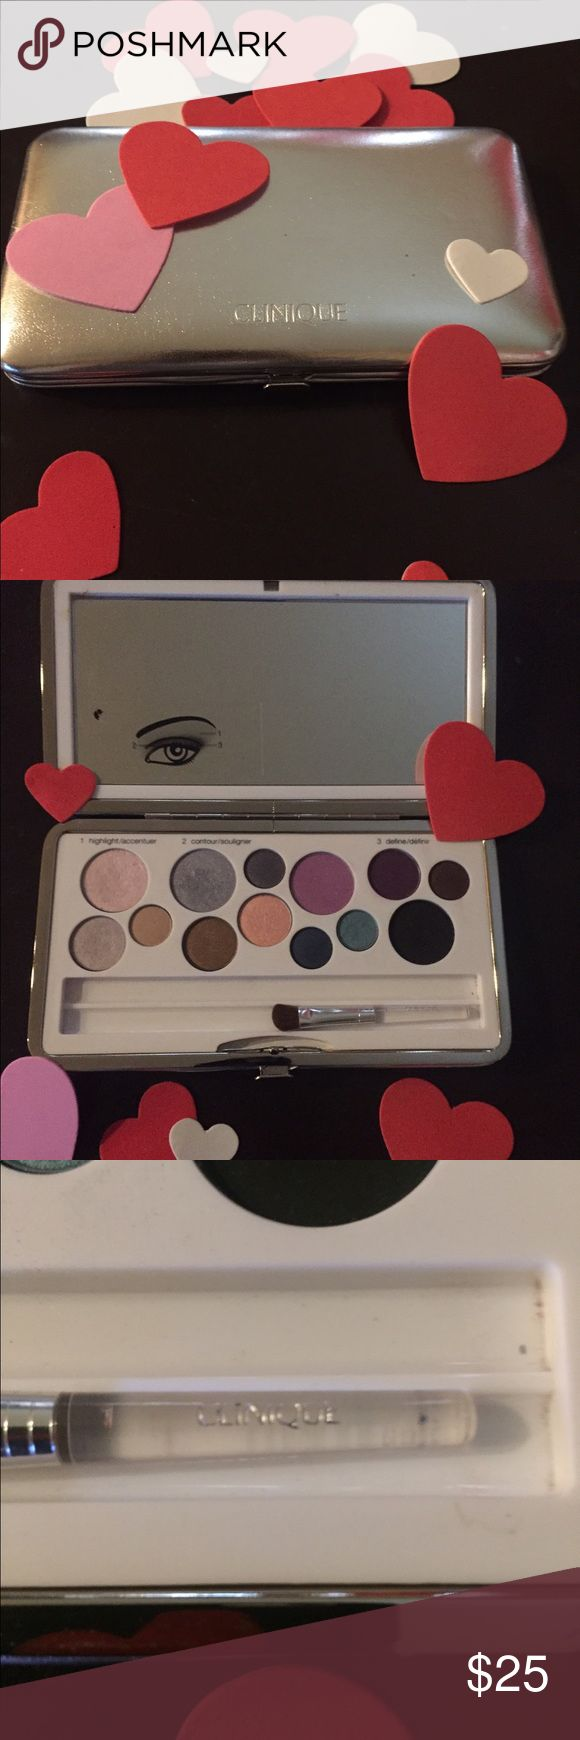 Clinique makeup palette of eyeshadows💕 NWOT, Clinique eye shadows 3 steps: highlight, contour, and define! Various shades for everyone;) there is only one applicator brush, I really don't know where they went! Other than that, excellent condition, I never used it! Clinique Makeup Eyeshadow